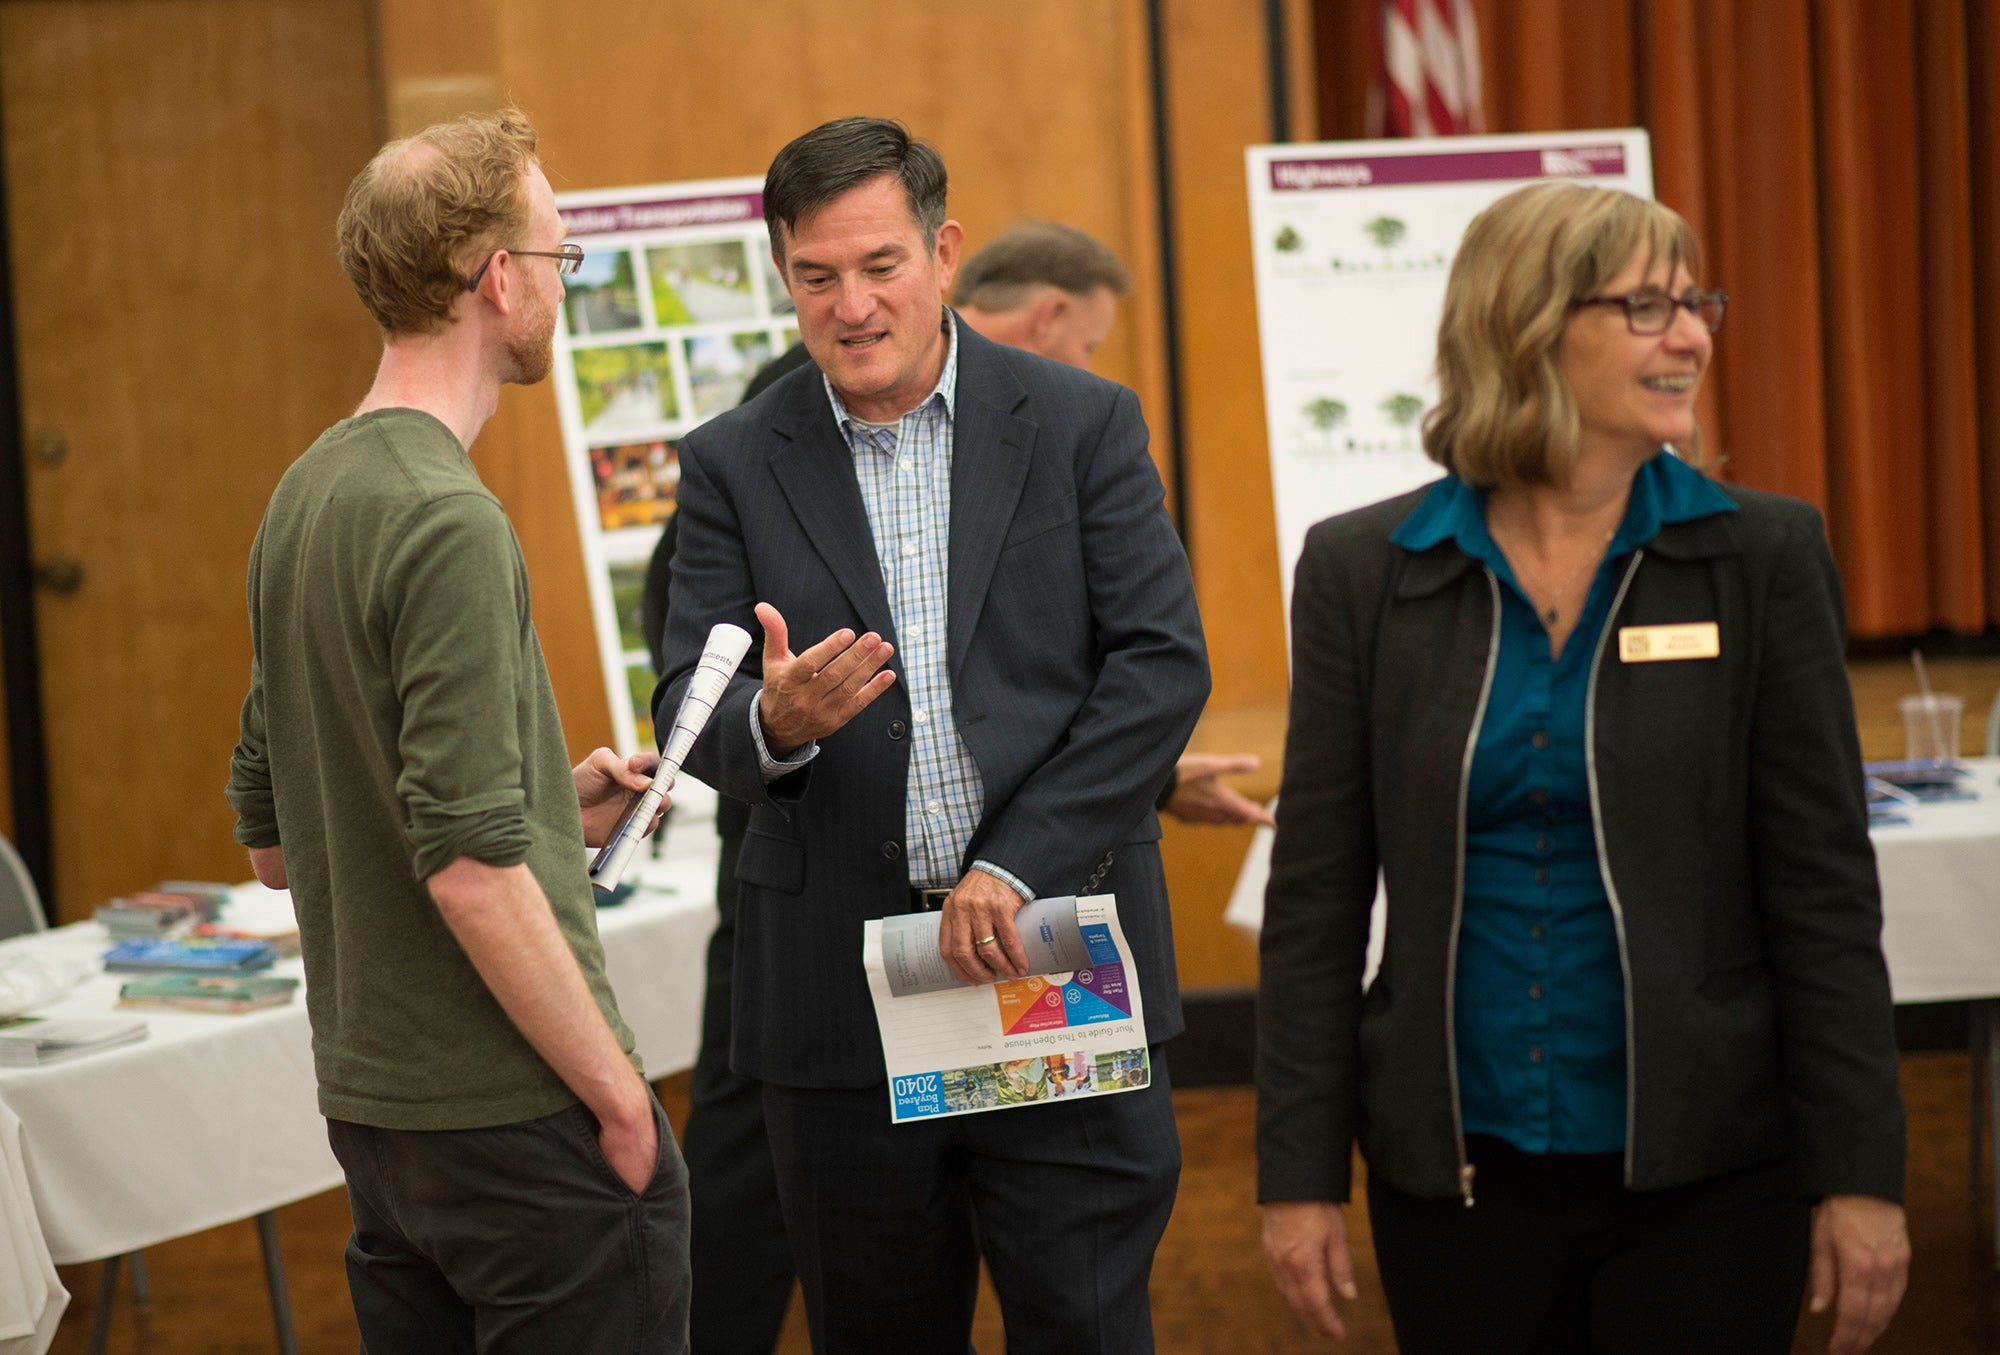 MTC Commissioner Mark Luce at Napa open house